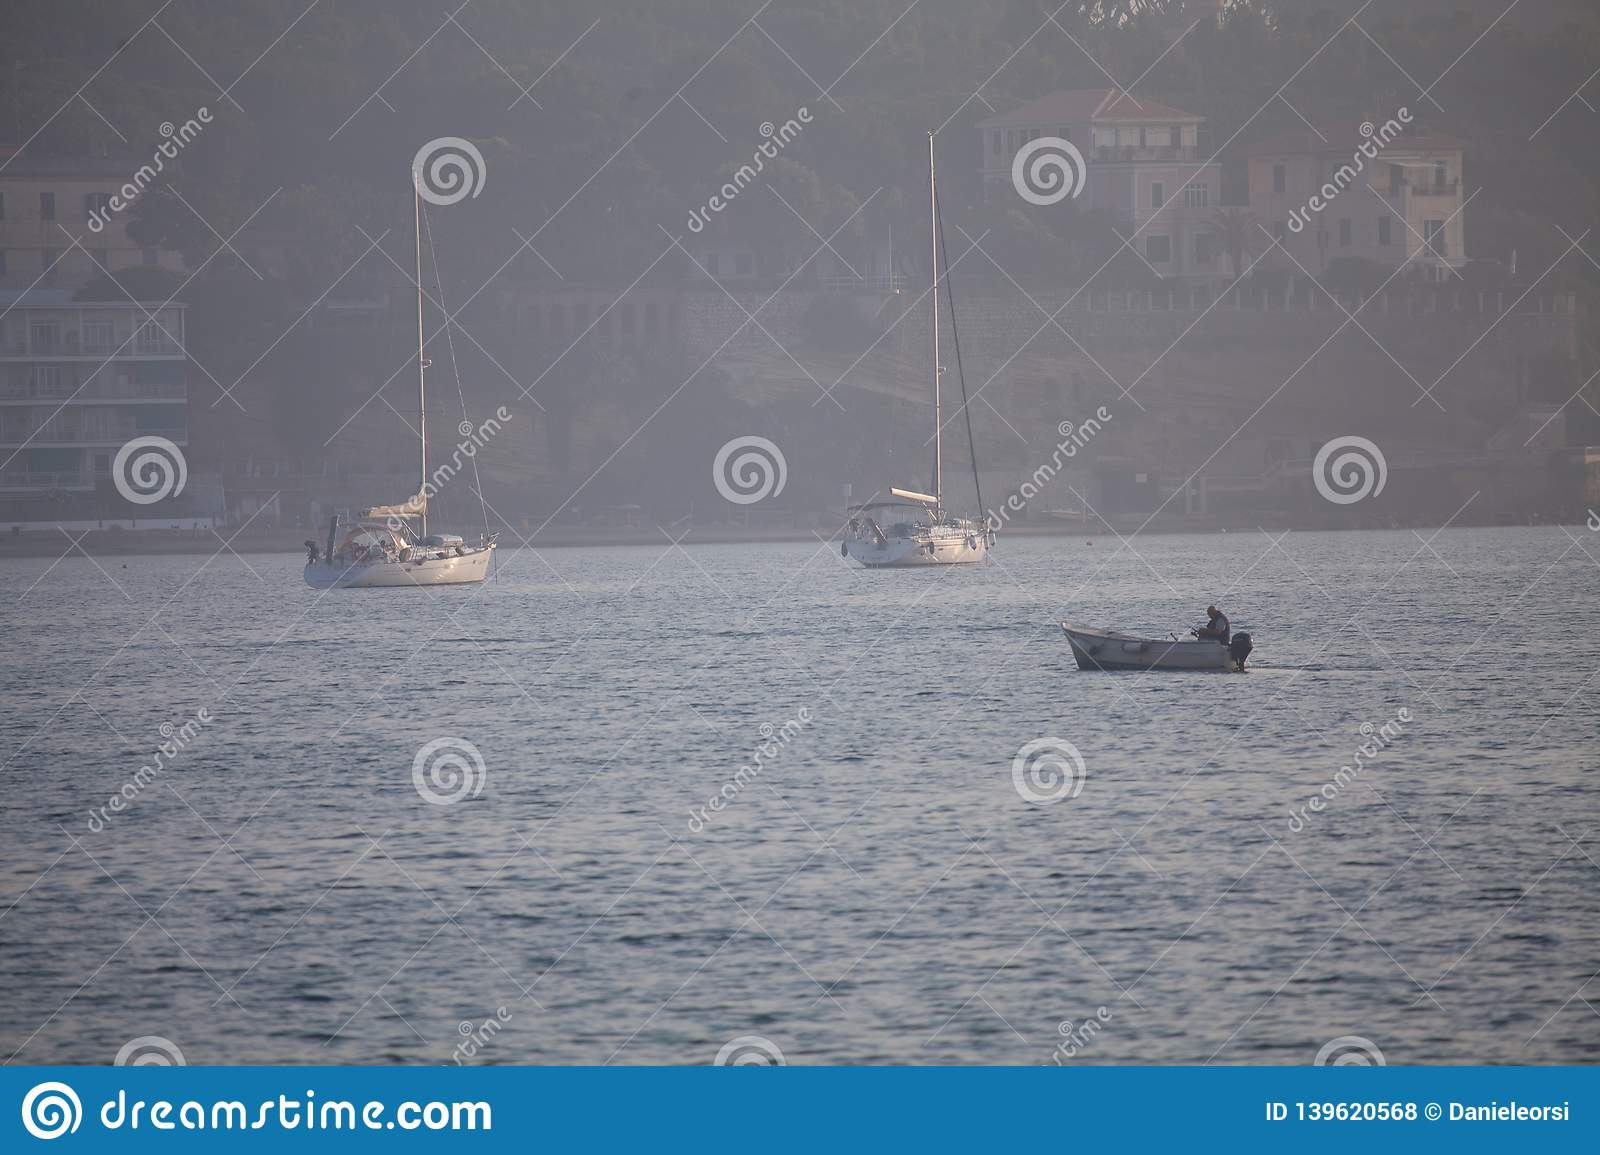 A view of a fishing net inside of the boat in the sea. Beautiful calm sea and water during an hot summer day